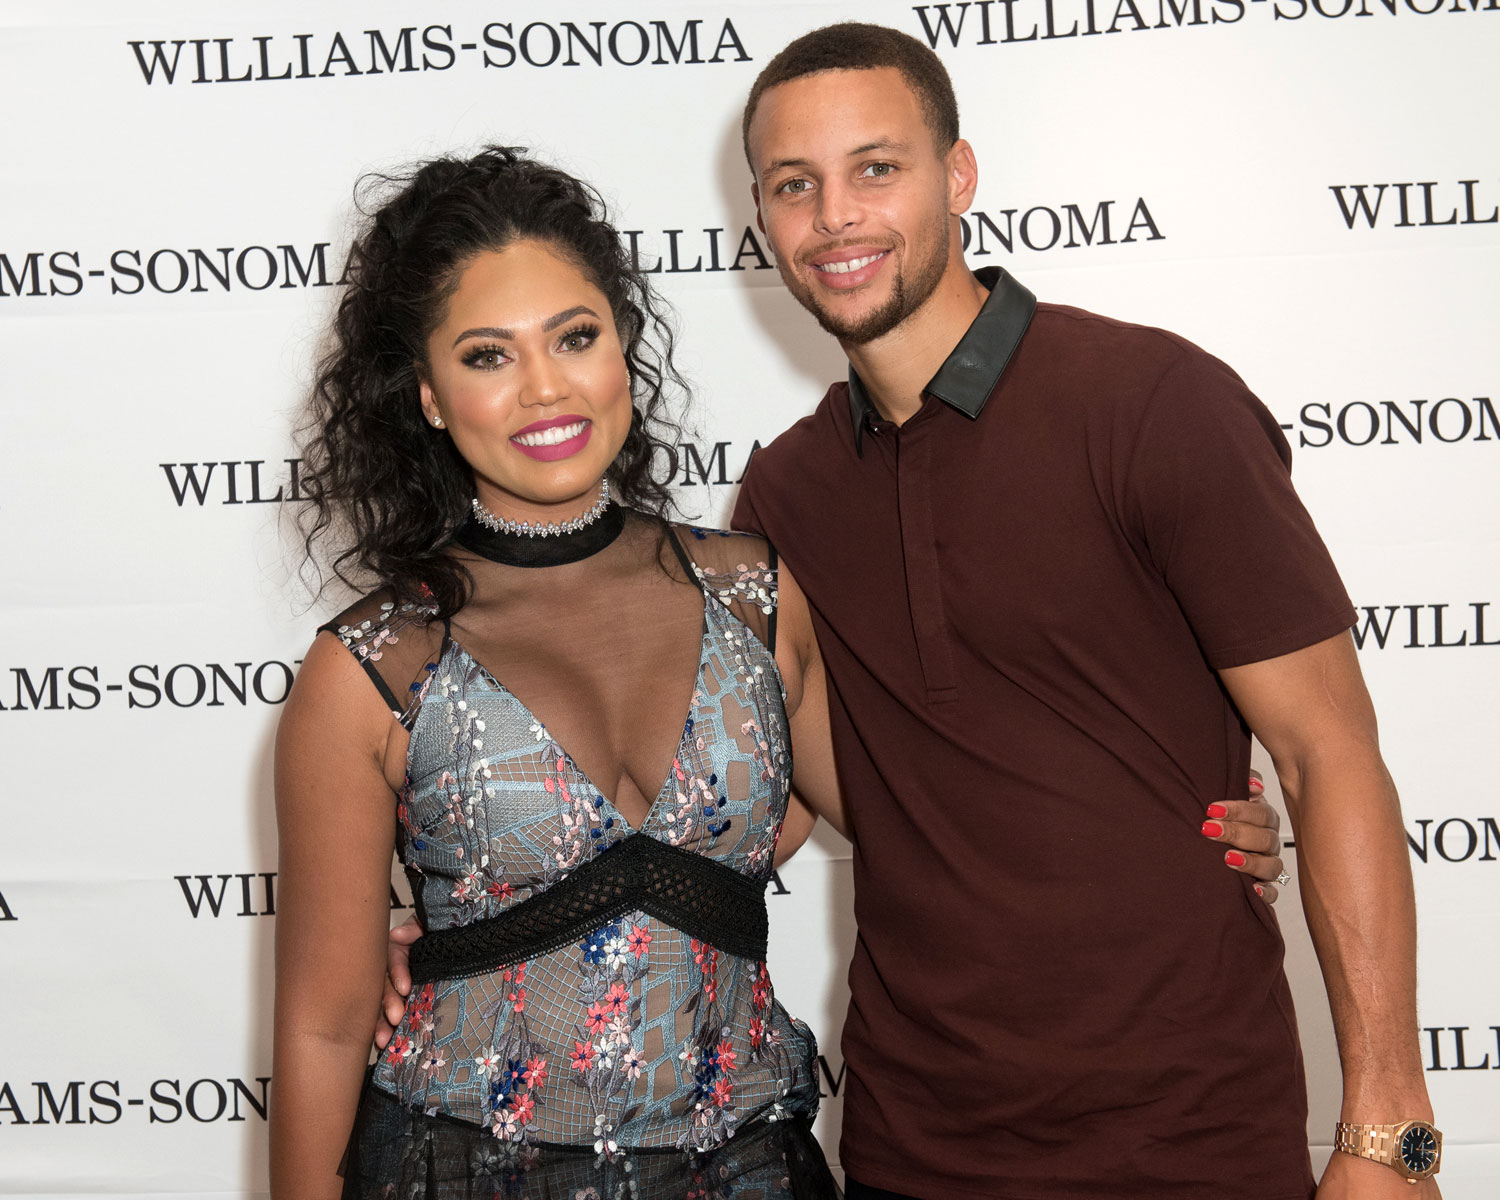 Ayesha Curry shares her marriage advice with The Knot after celebrating her fifth wedding anniversary with Steph Curry this summer